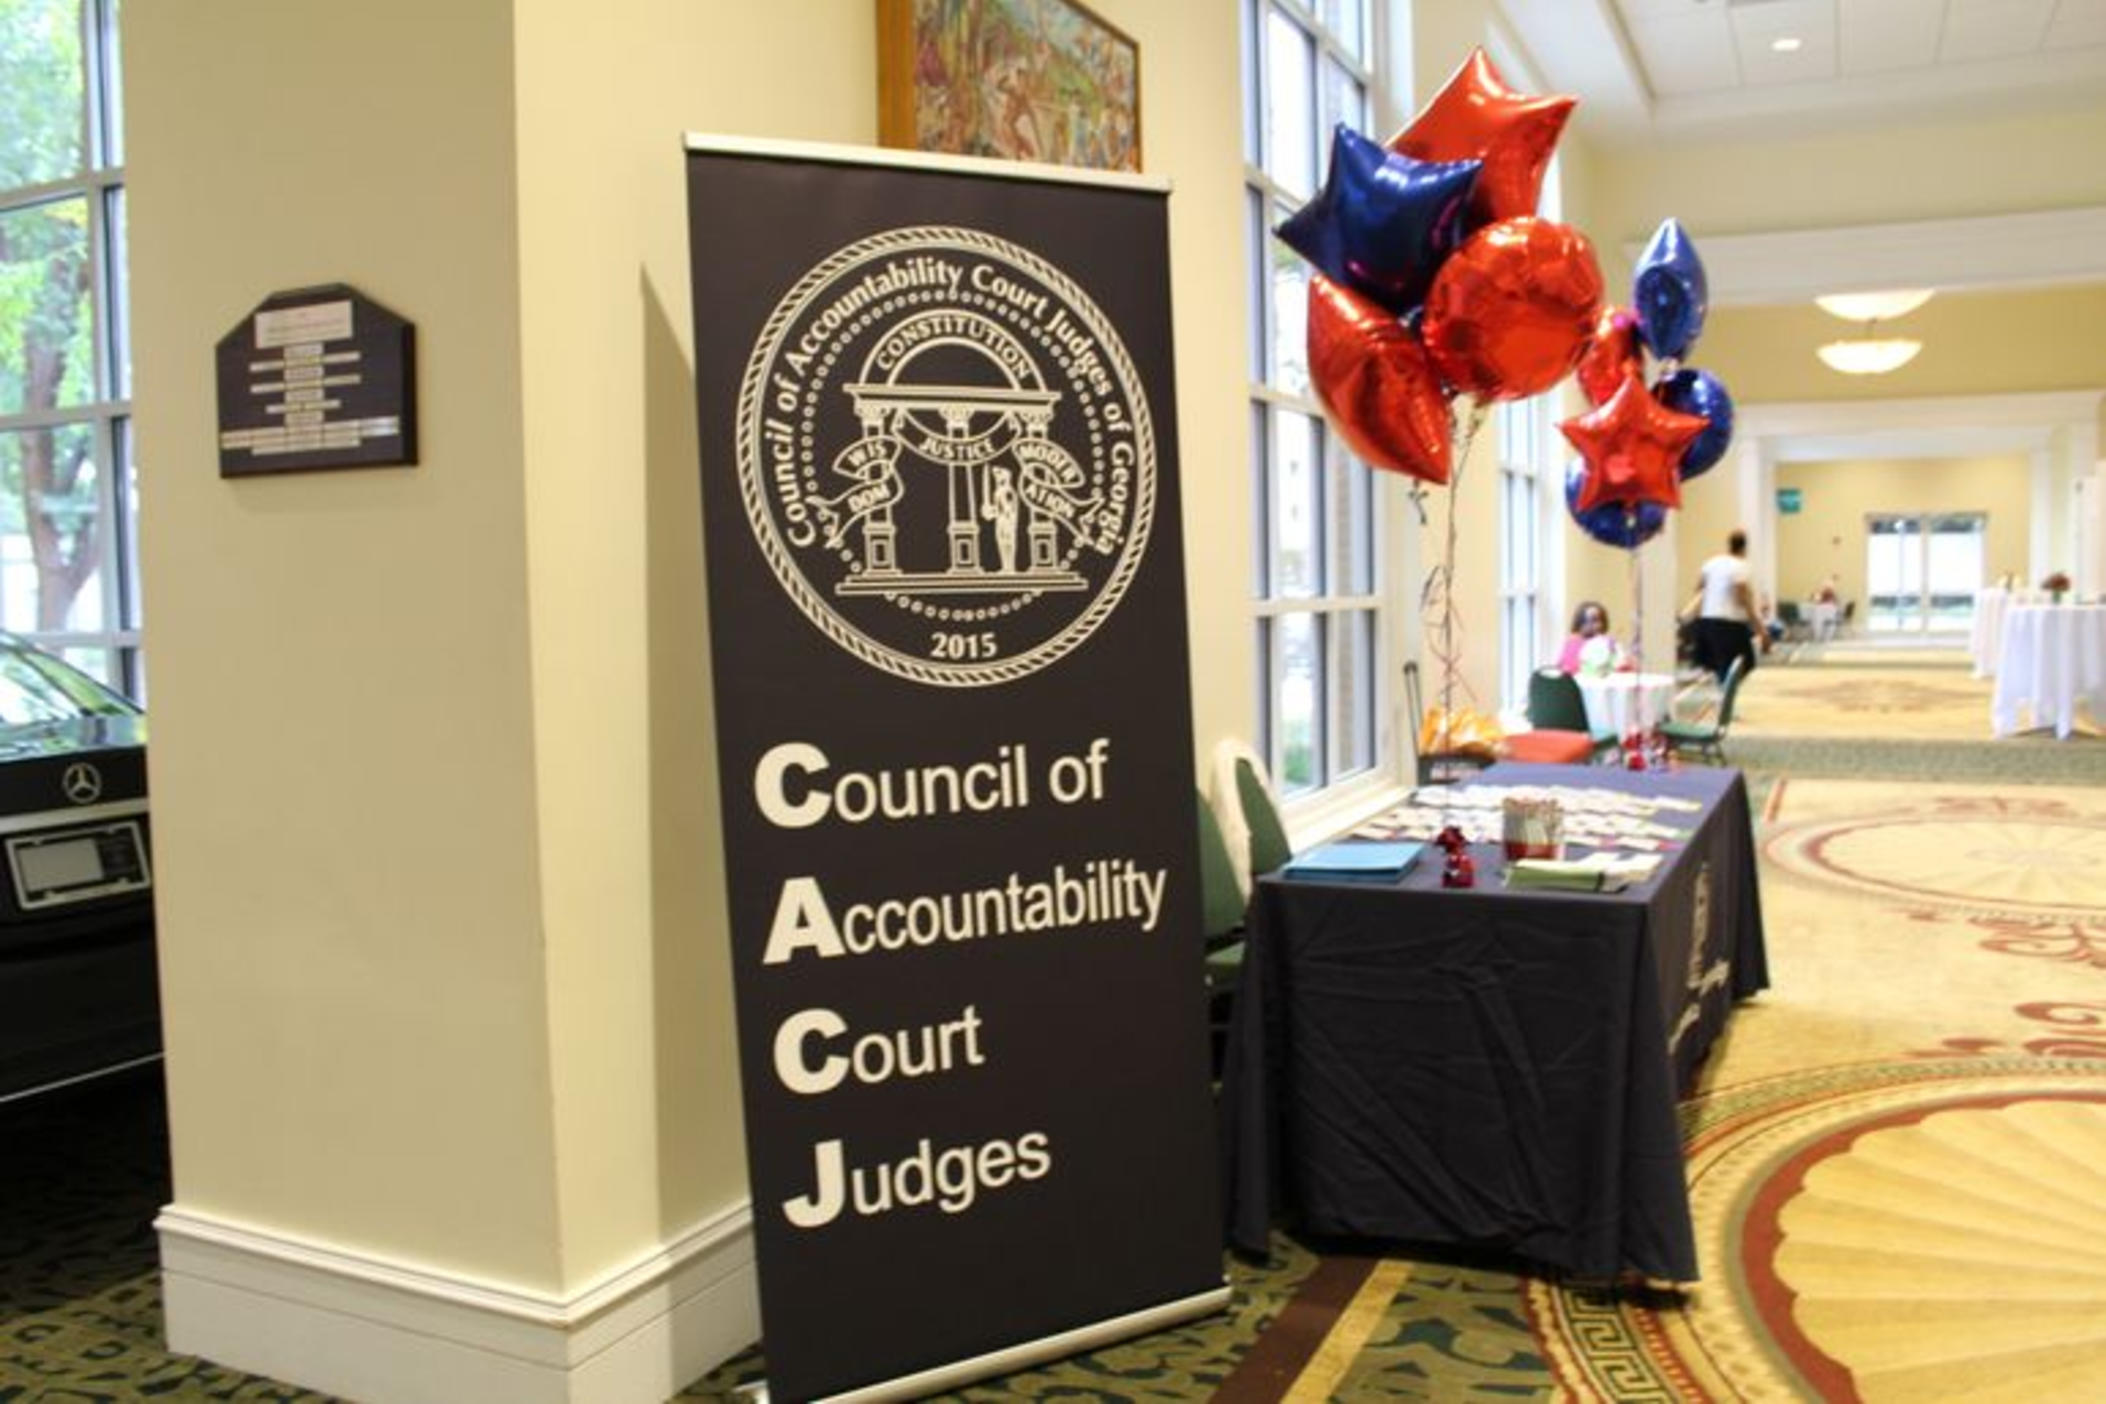 Table at the conference with balloons and a CACJ banner.